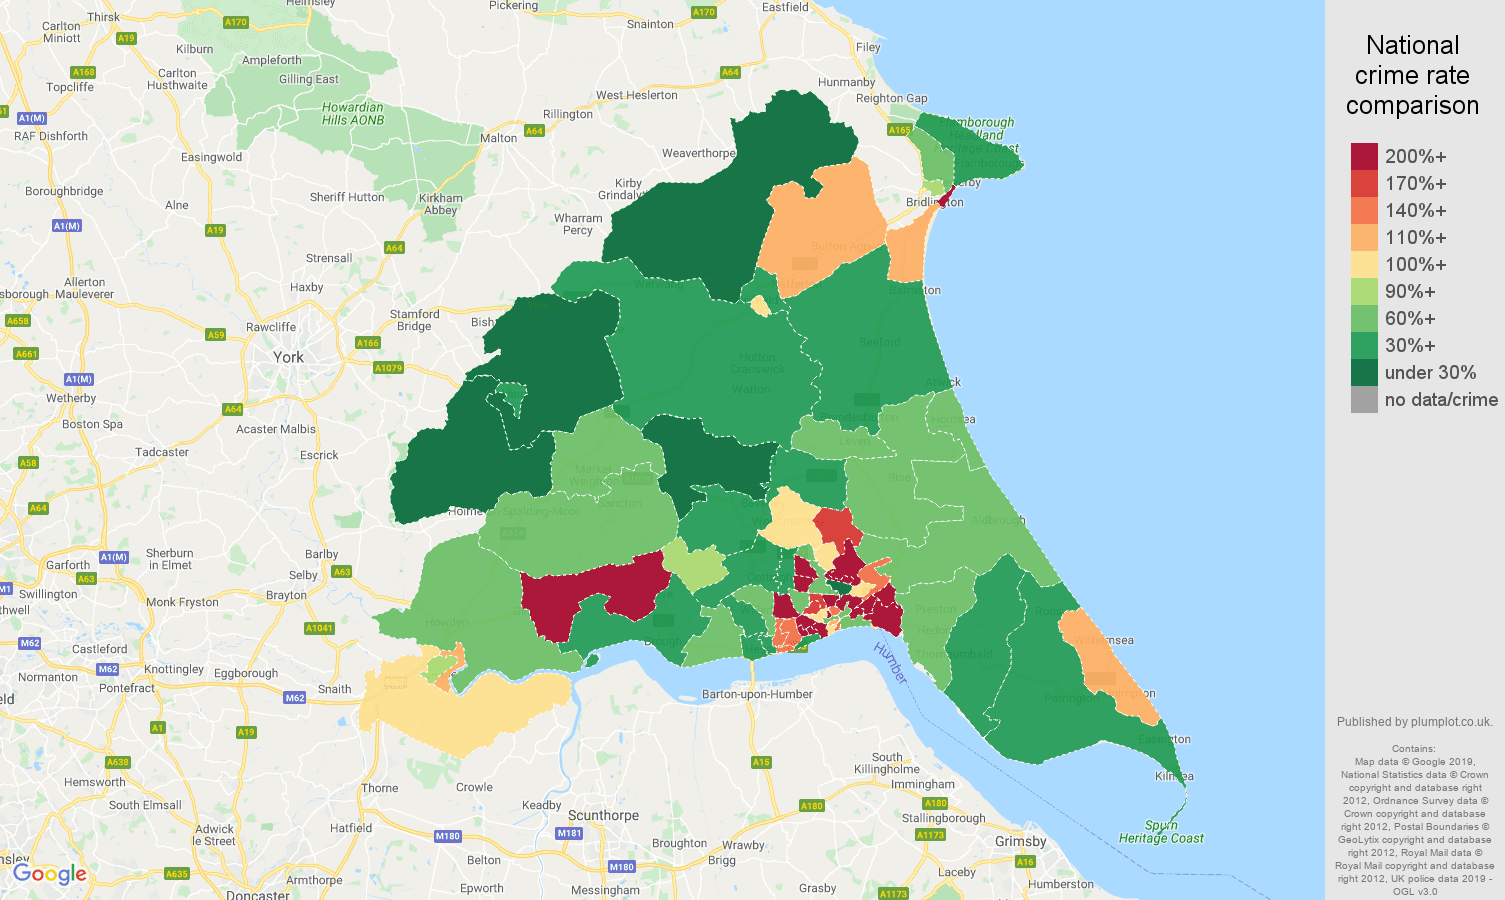 East Riding of Yorkshire other crime rate comparison map